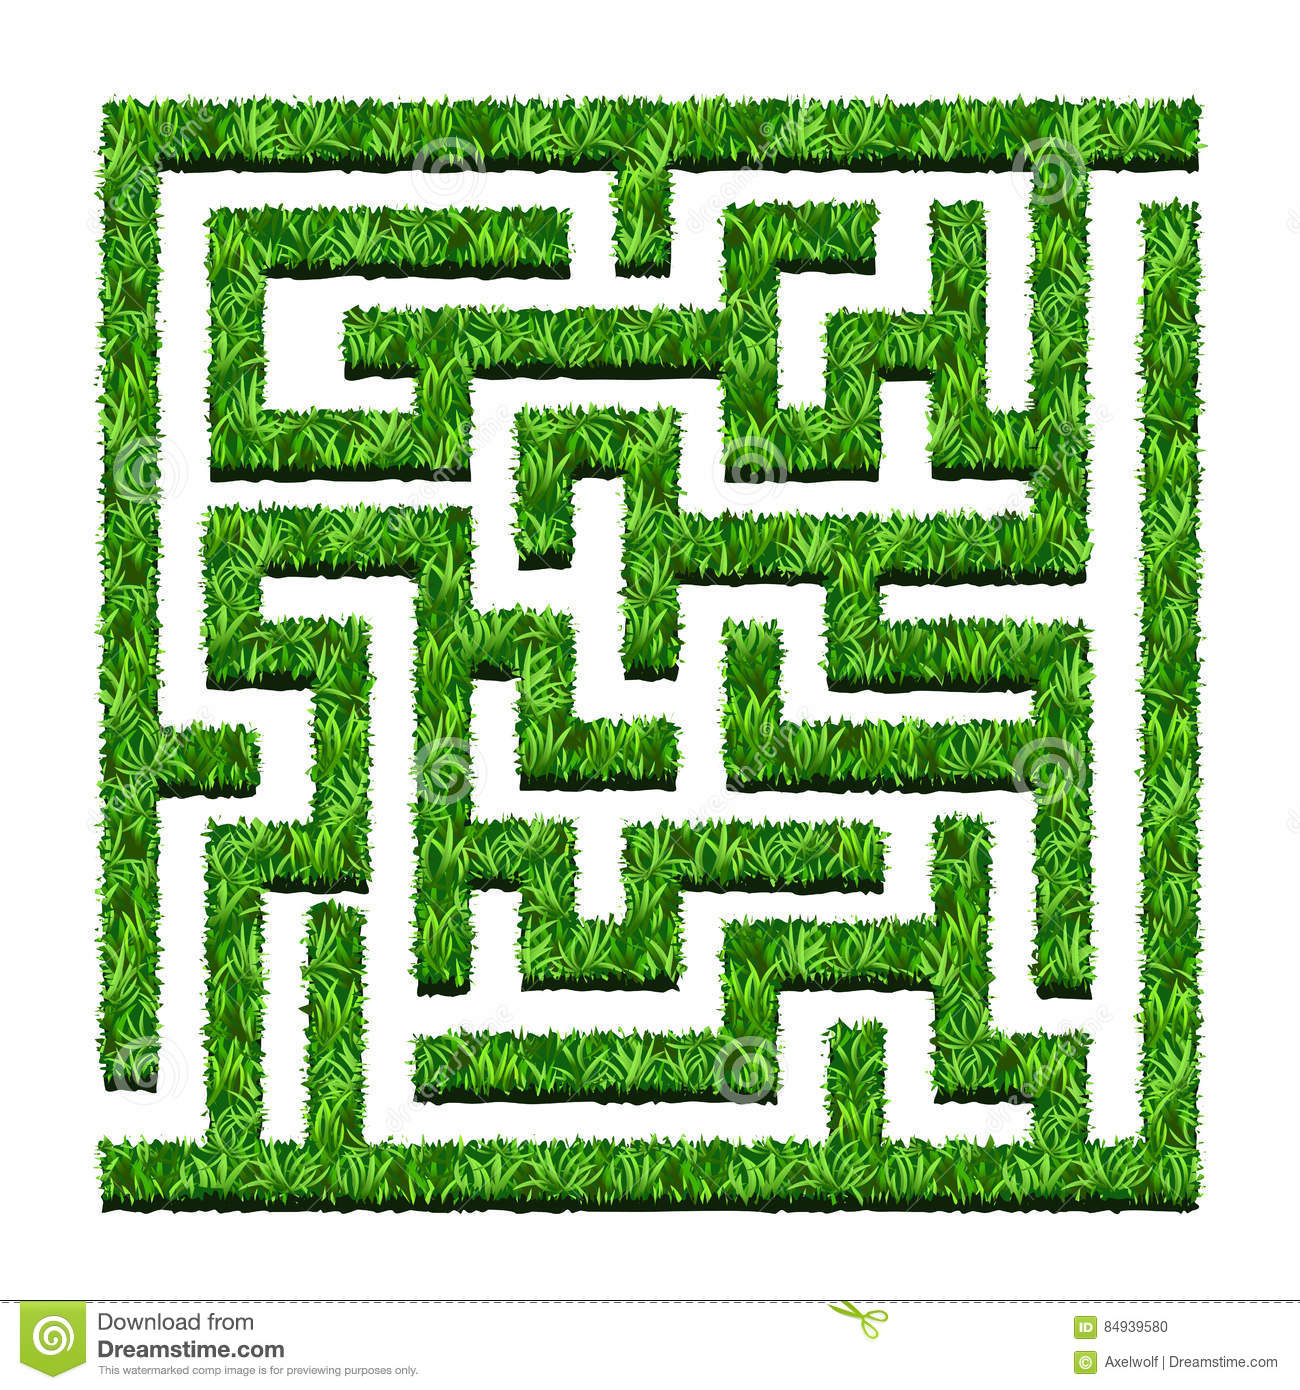 Hedge Maze Stock Illustrations – 56 Hedge Maze Stock Illustrations on meditation garden designs, new mexico garden designs, shade garden designs, rectangular prayer labyrinth designs, simple garden designs, knockout rose garden designs, heart labyrinth designs, spiral designs, walking labyrinth designs, dog park designs, finger labyrinth designs, informal herb garden designs, labyrinth backyard designs, greenhouse garden designs, christian prayer labyrinth designs, stage garden designs, 6 path labyrinth designs, water garden designs, indoor labyrinth designs, school garden designs,